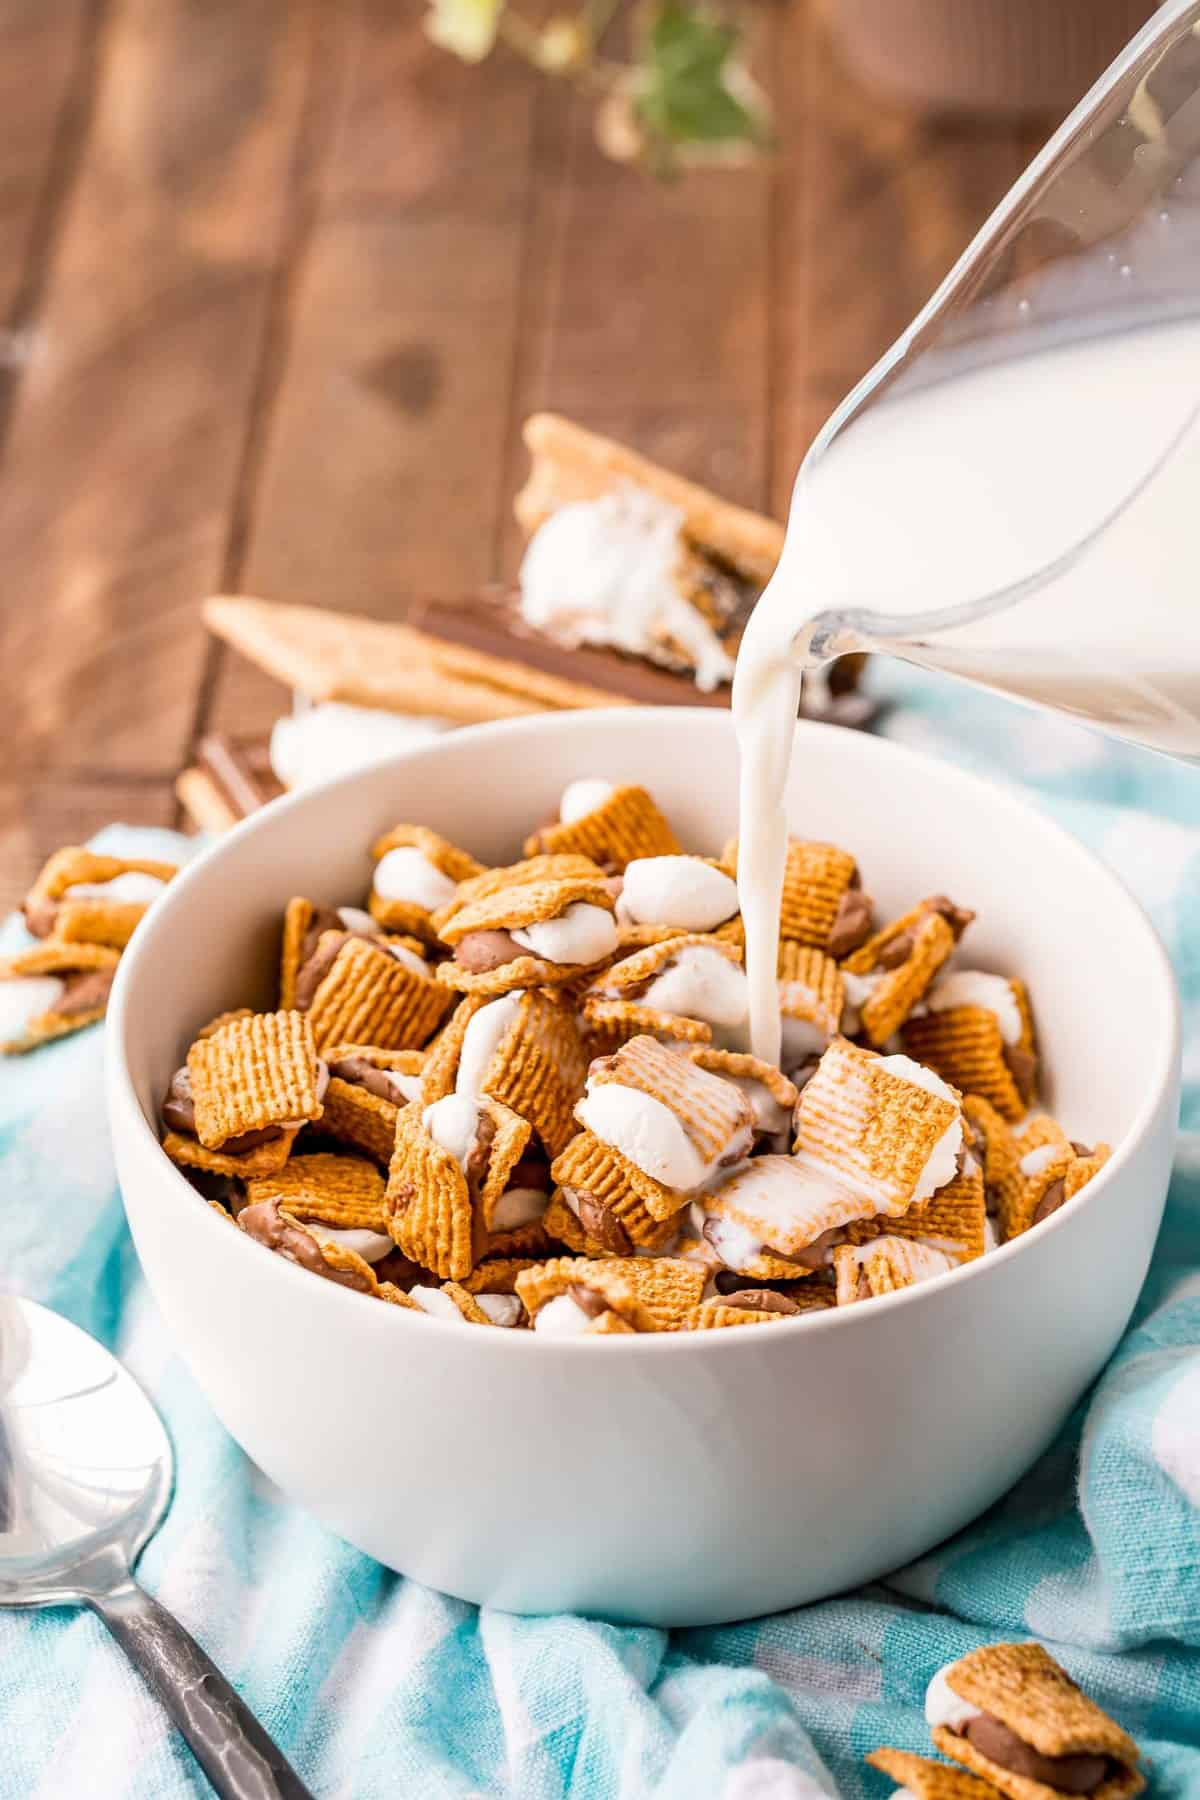 Milk being poured into a bowl of s'mores cereal.